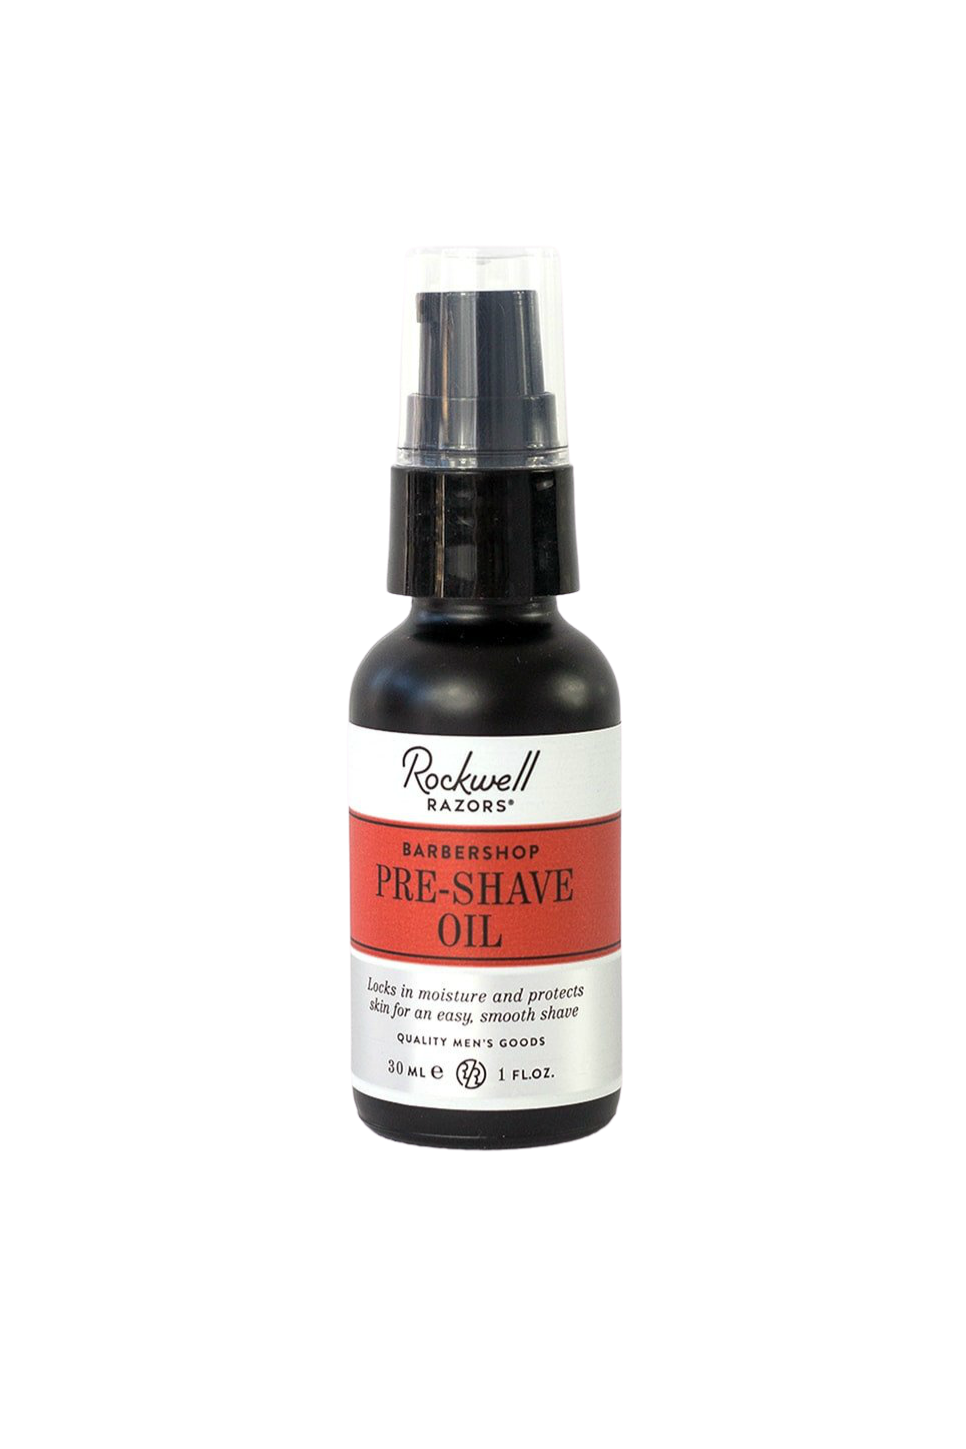 ROCKWELL PRE-SHAVE OIL